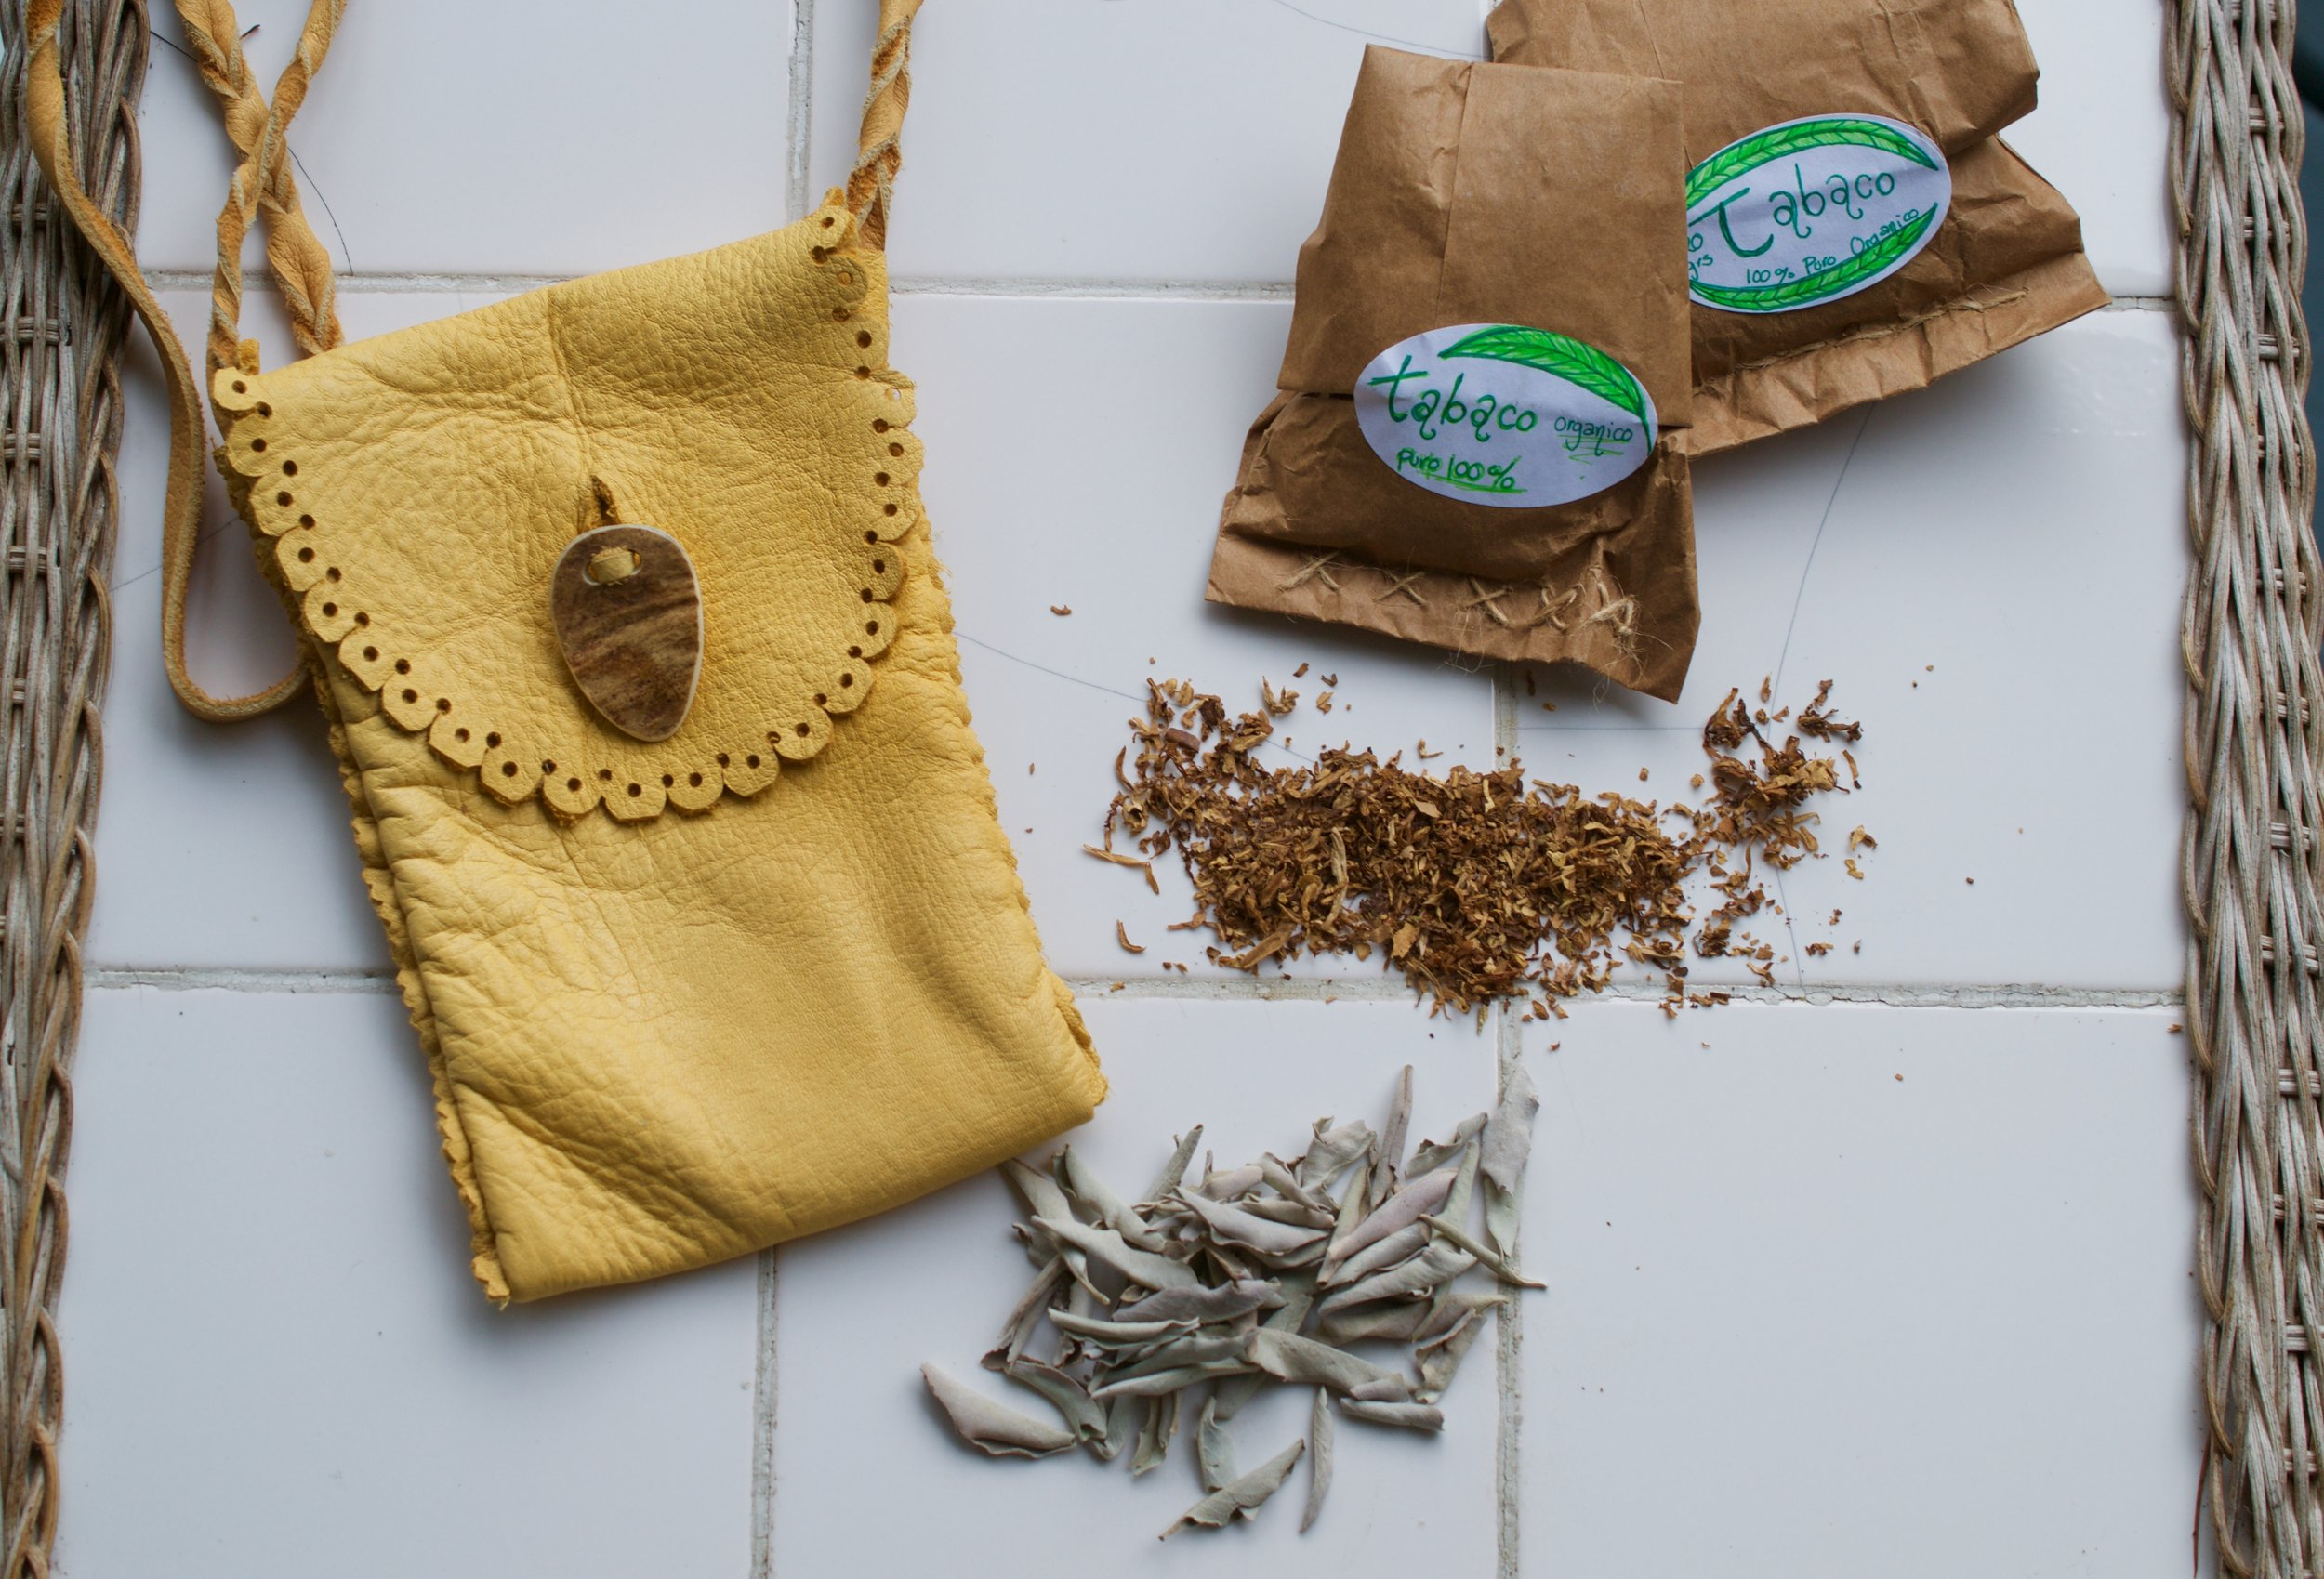 Tobacco and White Sage as offering or smudging before harvesting wild herbs.